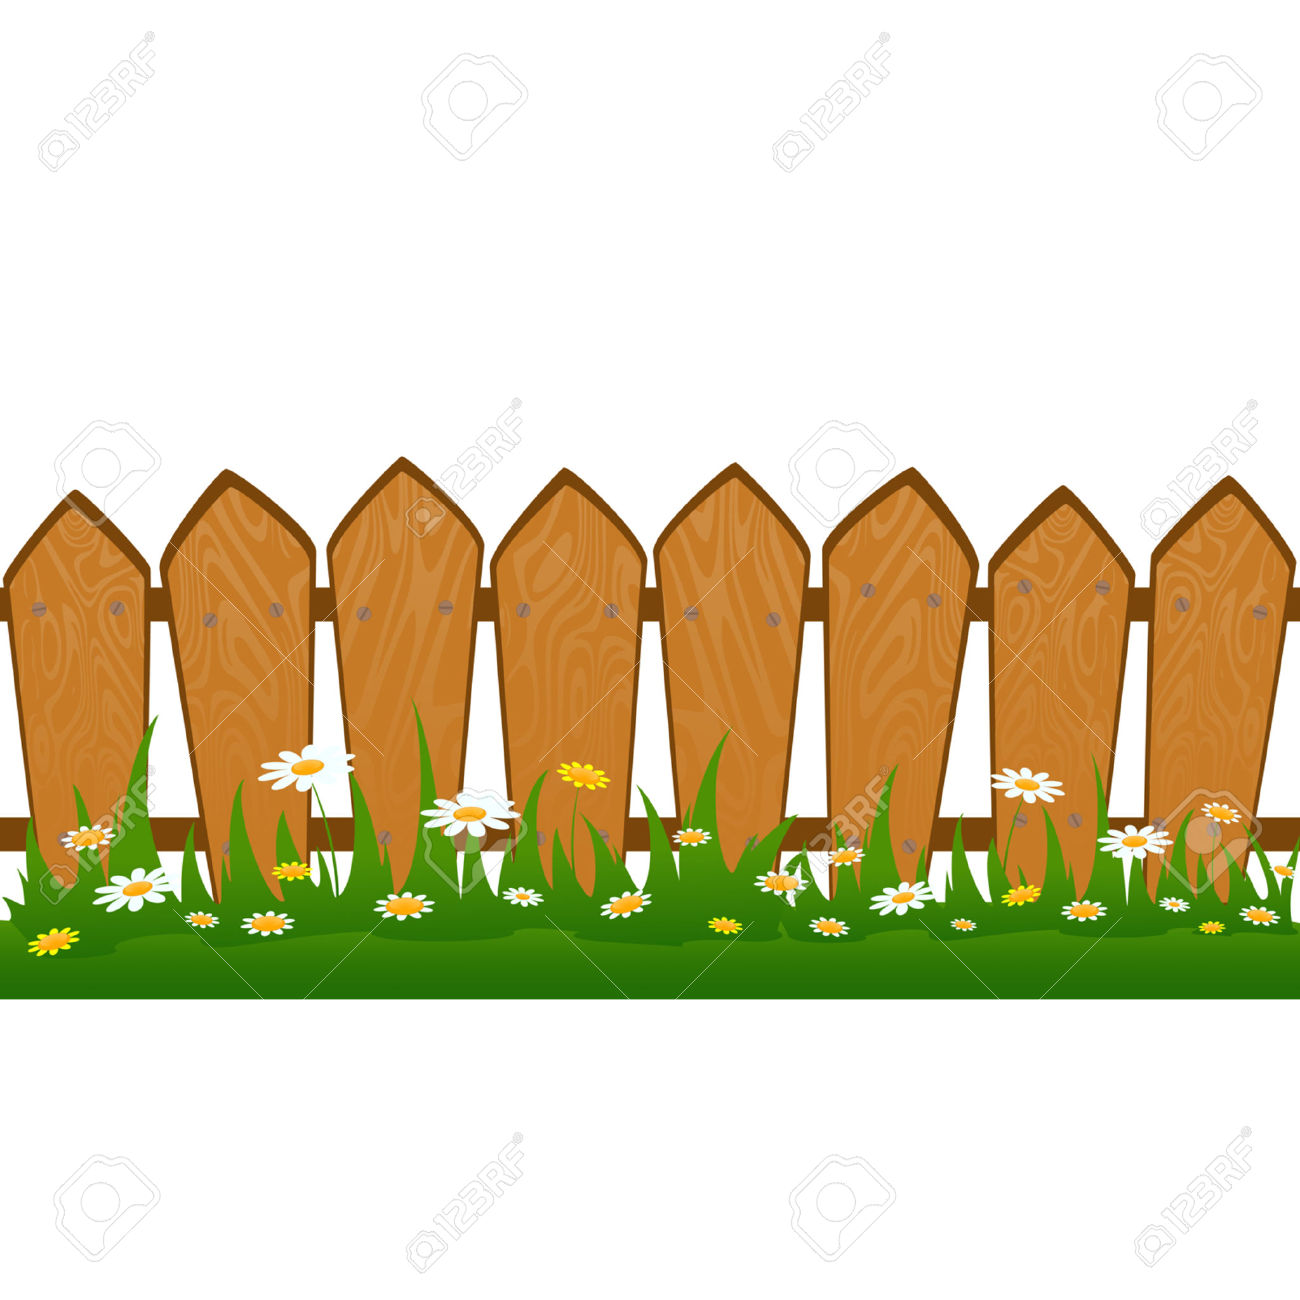 Barn fence clipart free picture black and white stock Wooden Fence Cliparts   Free download best Wooden Fence Cliparts on ... picture black and white stock